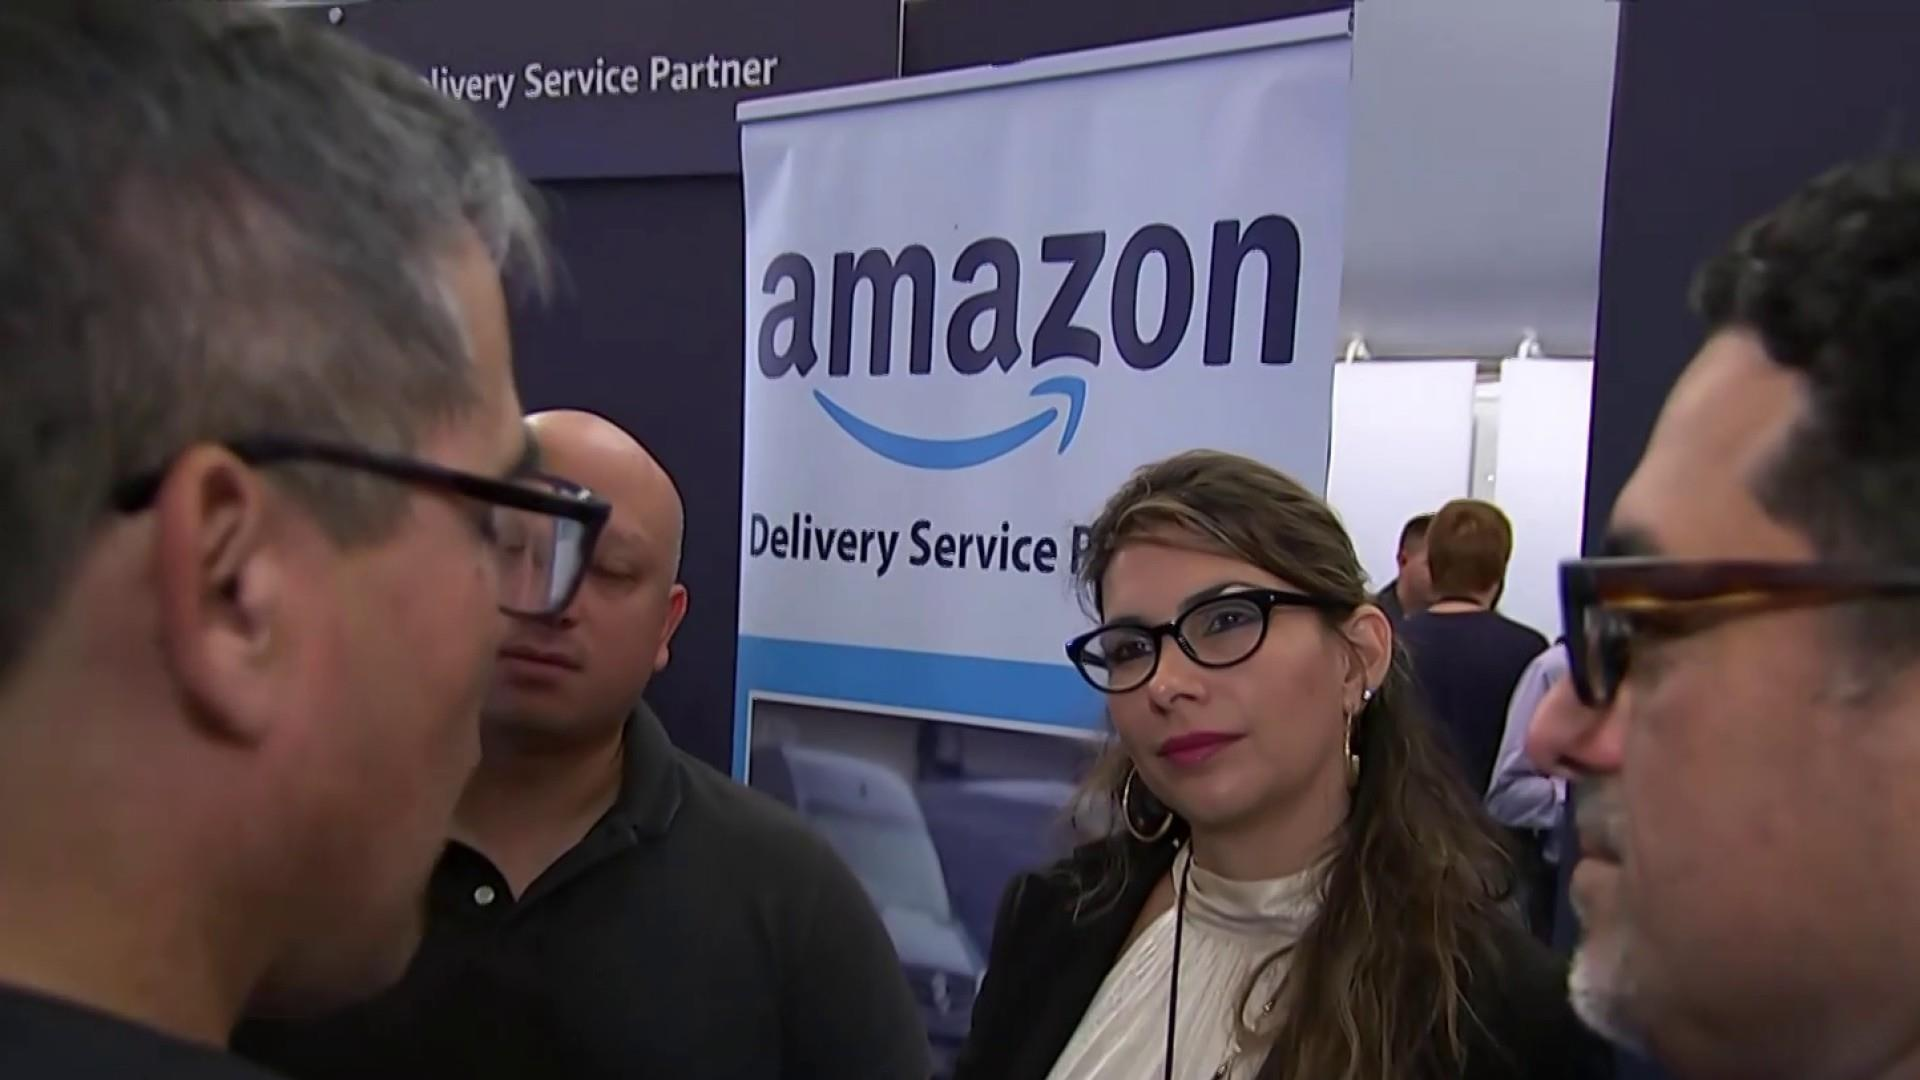 Amazon holds job fairs in 6 U.S. cities to fill tens of thousands of positions